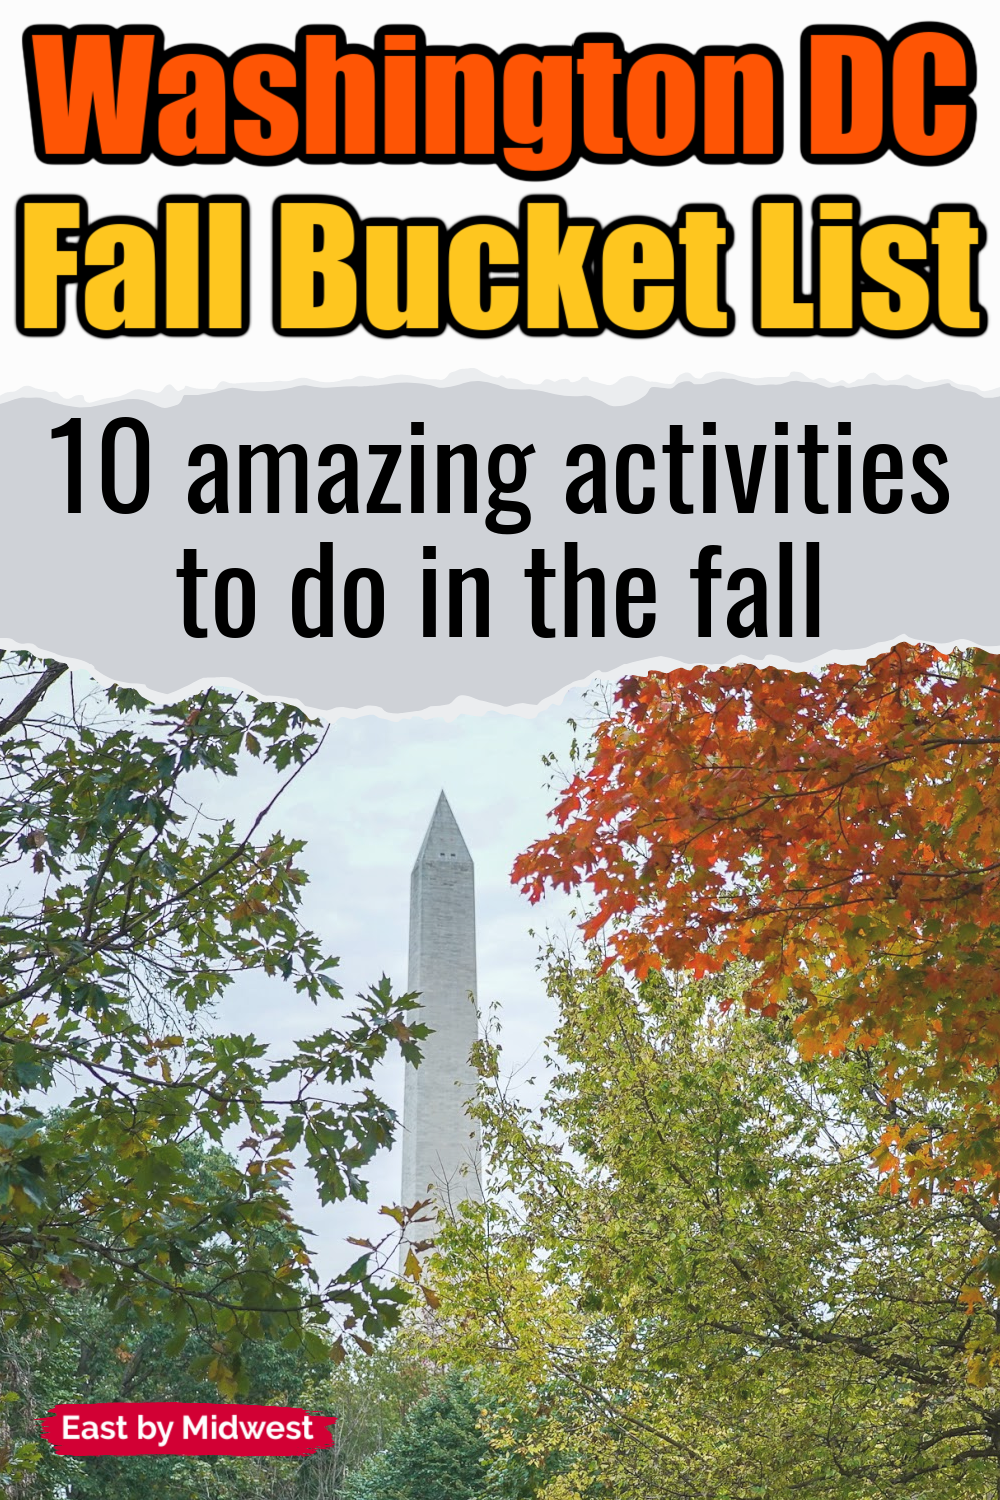 DC Fall Bucket List: 10 Amazing Things You Need to Do in the Fall